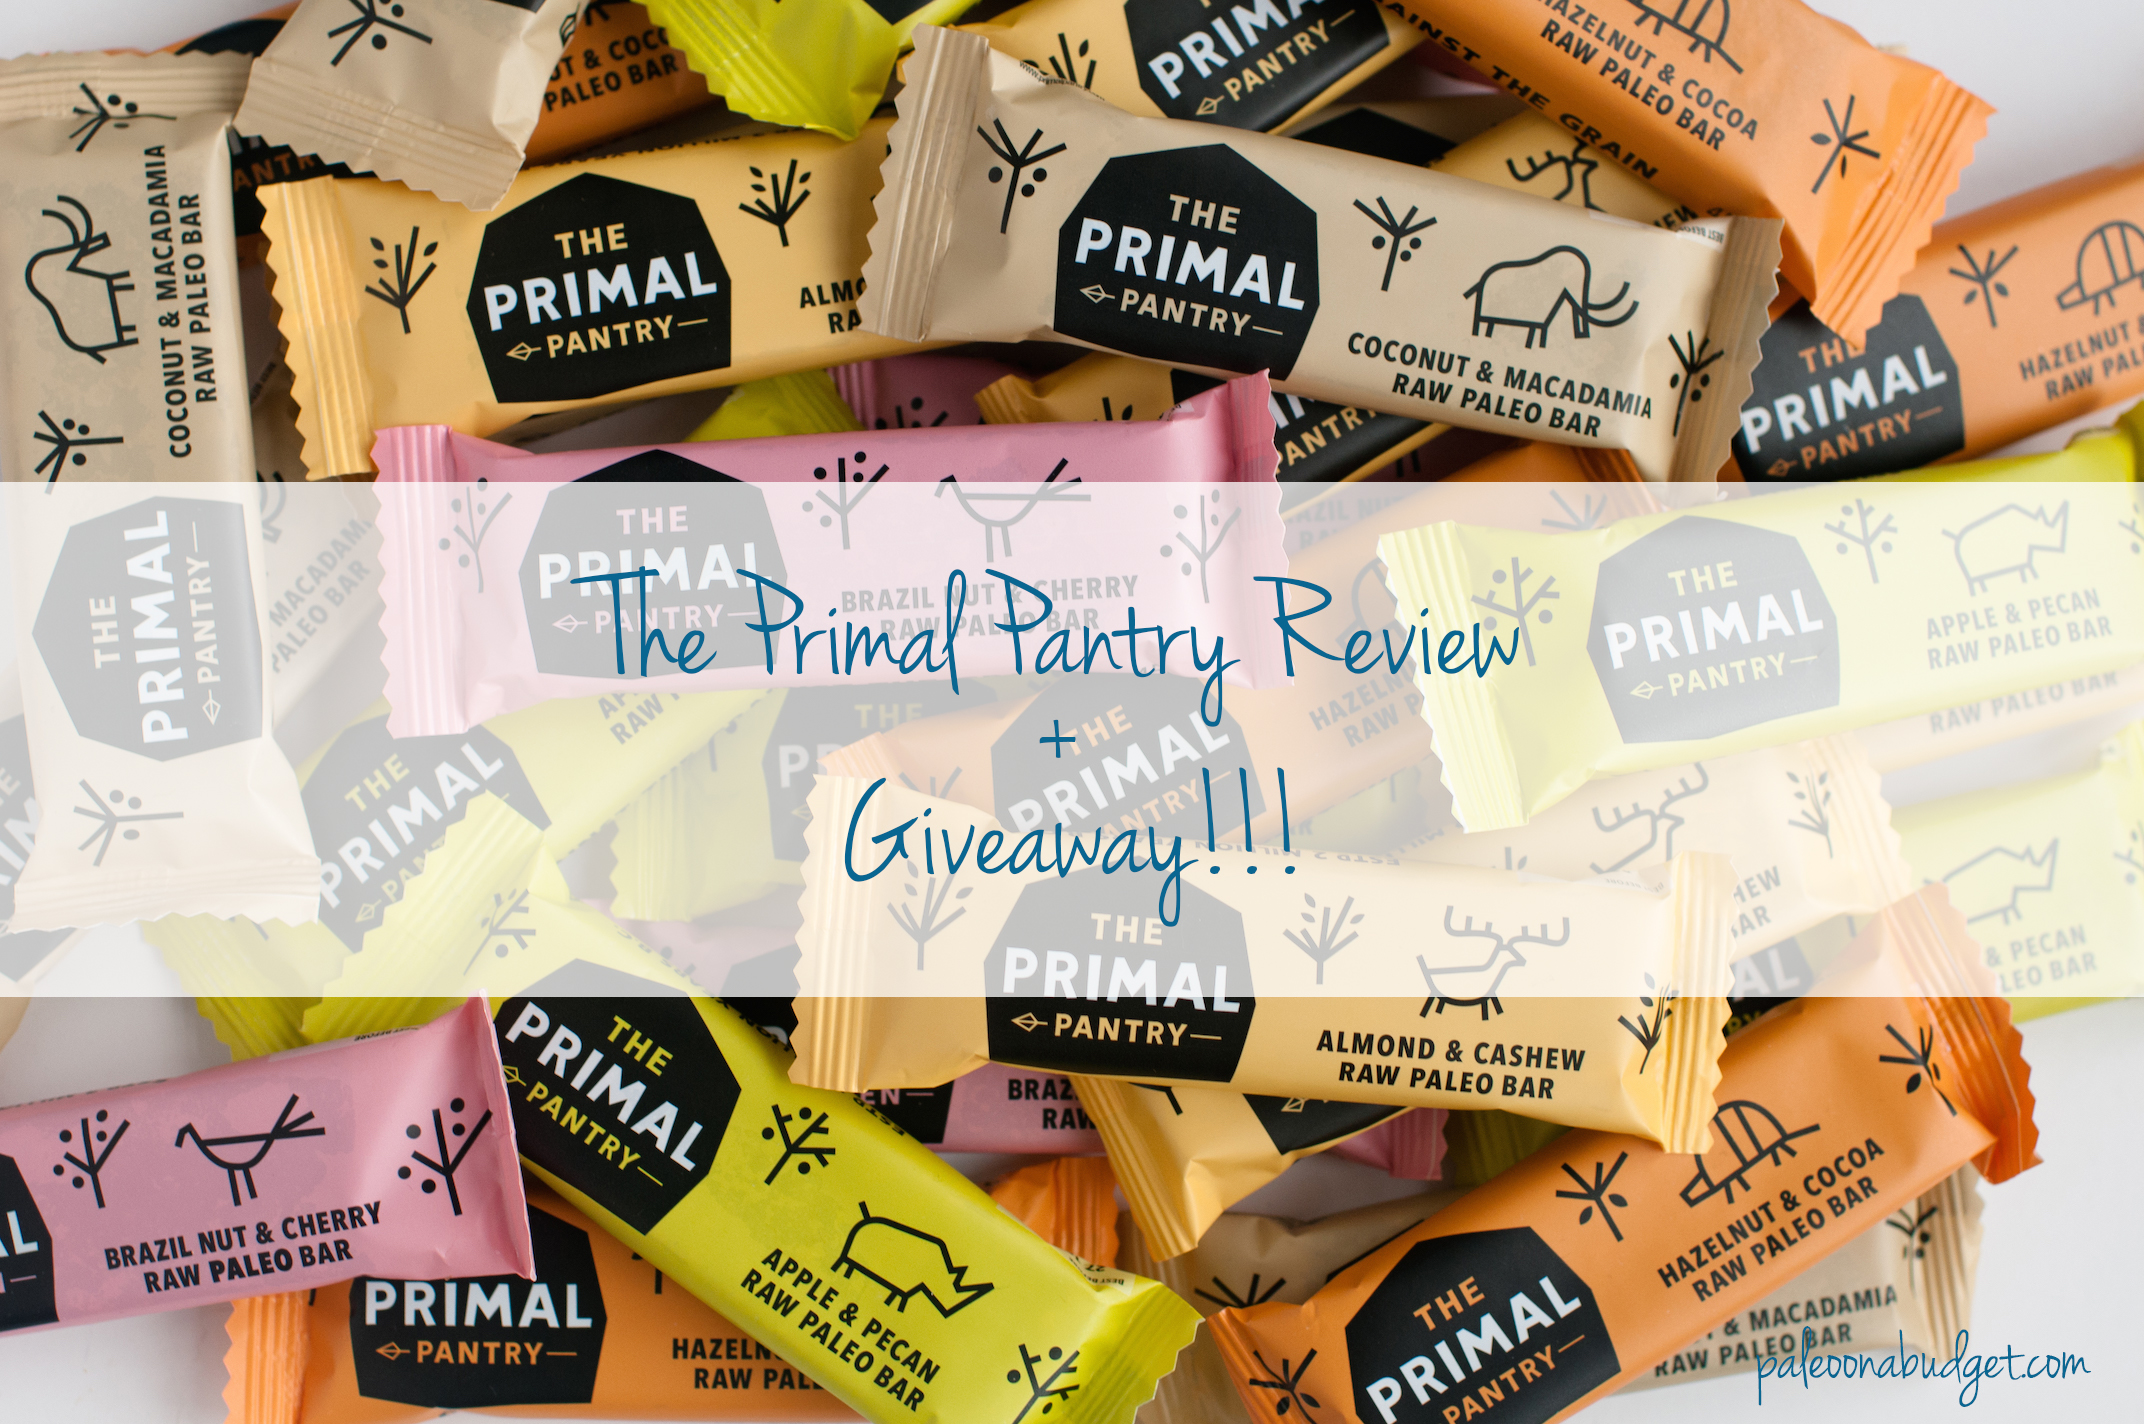 The Primal Pantry: Review + Giveaway!